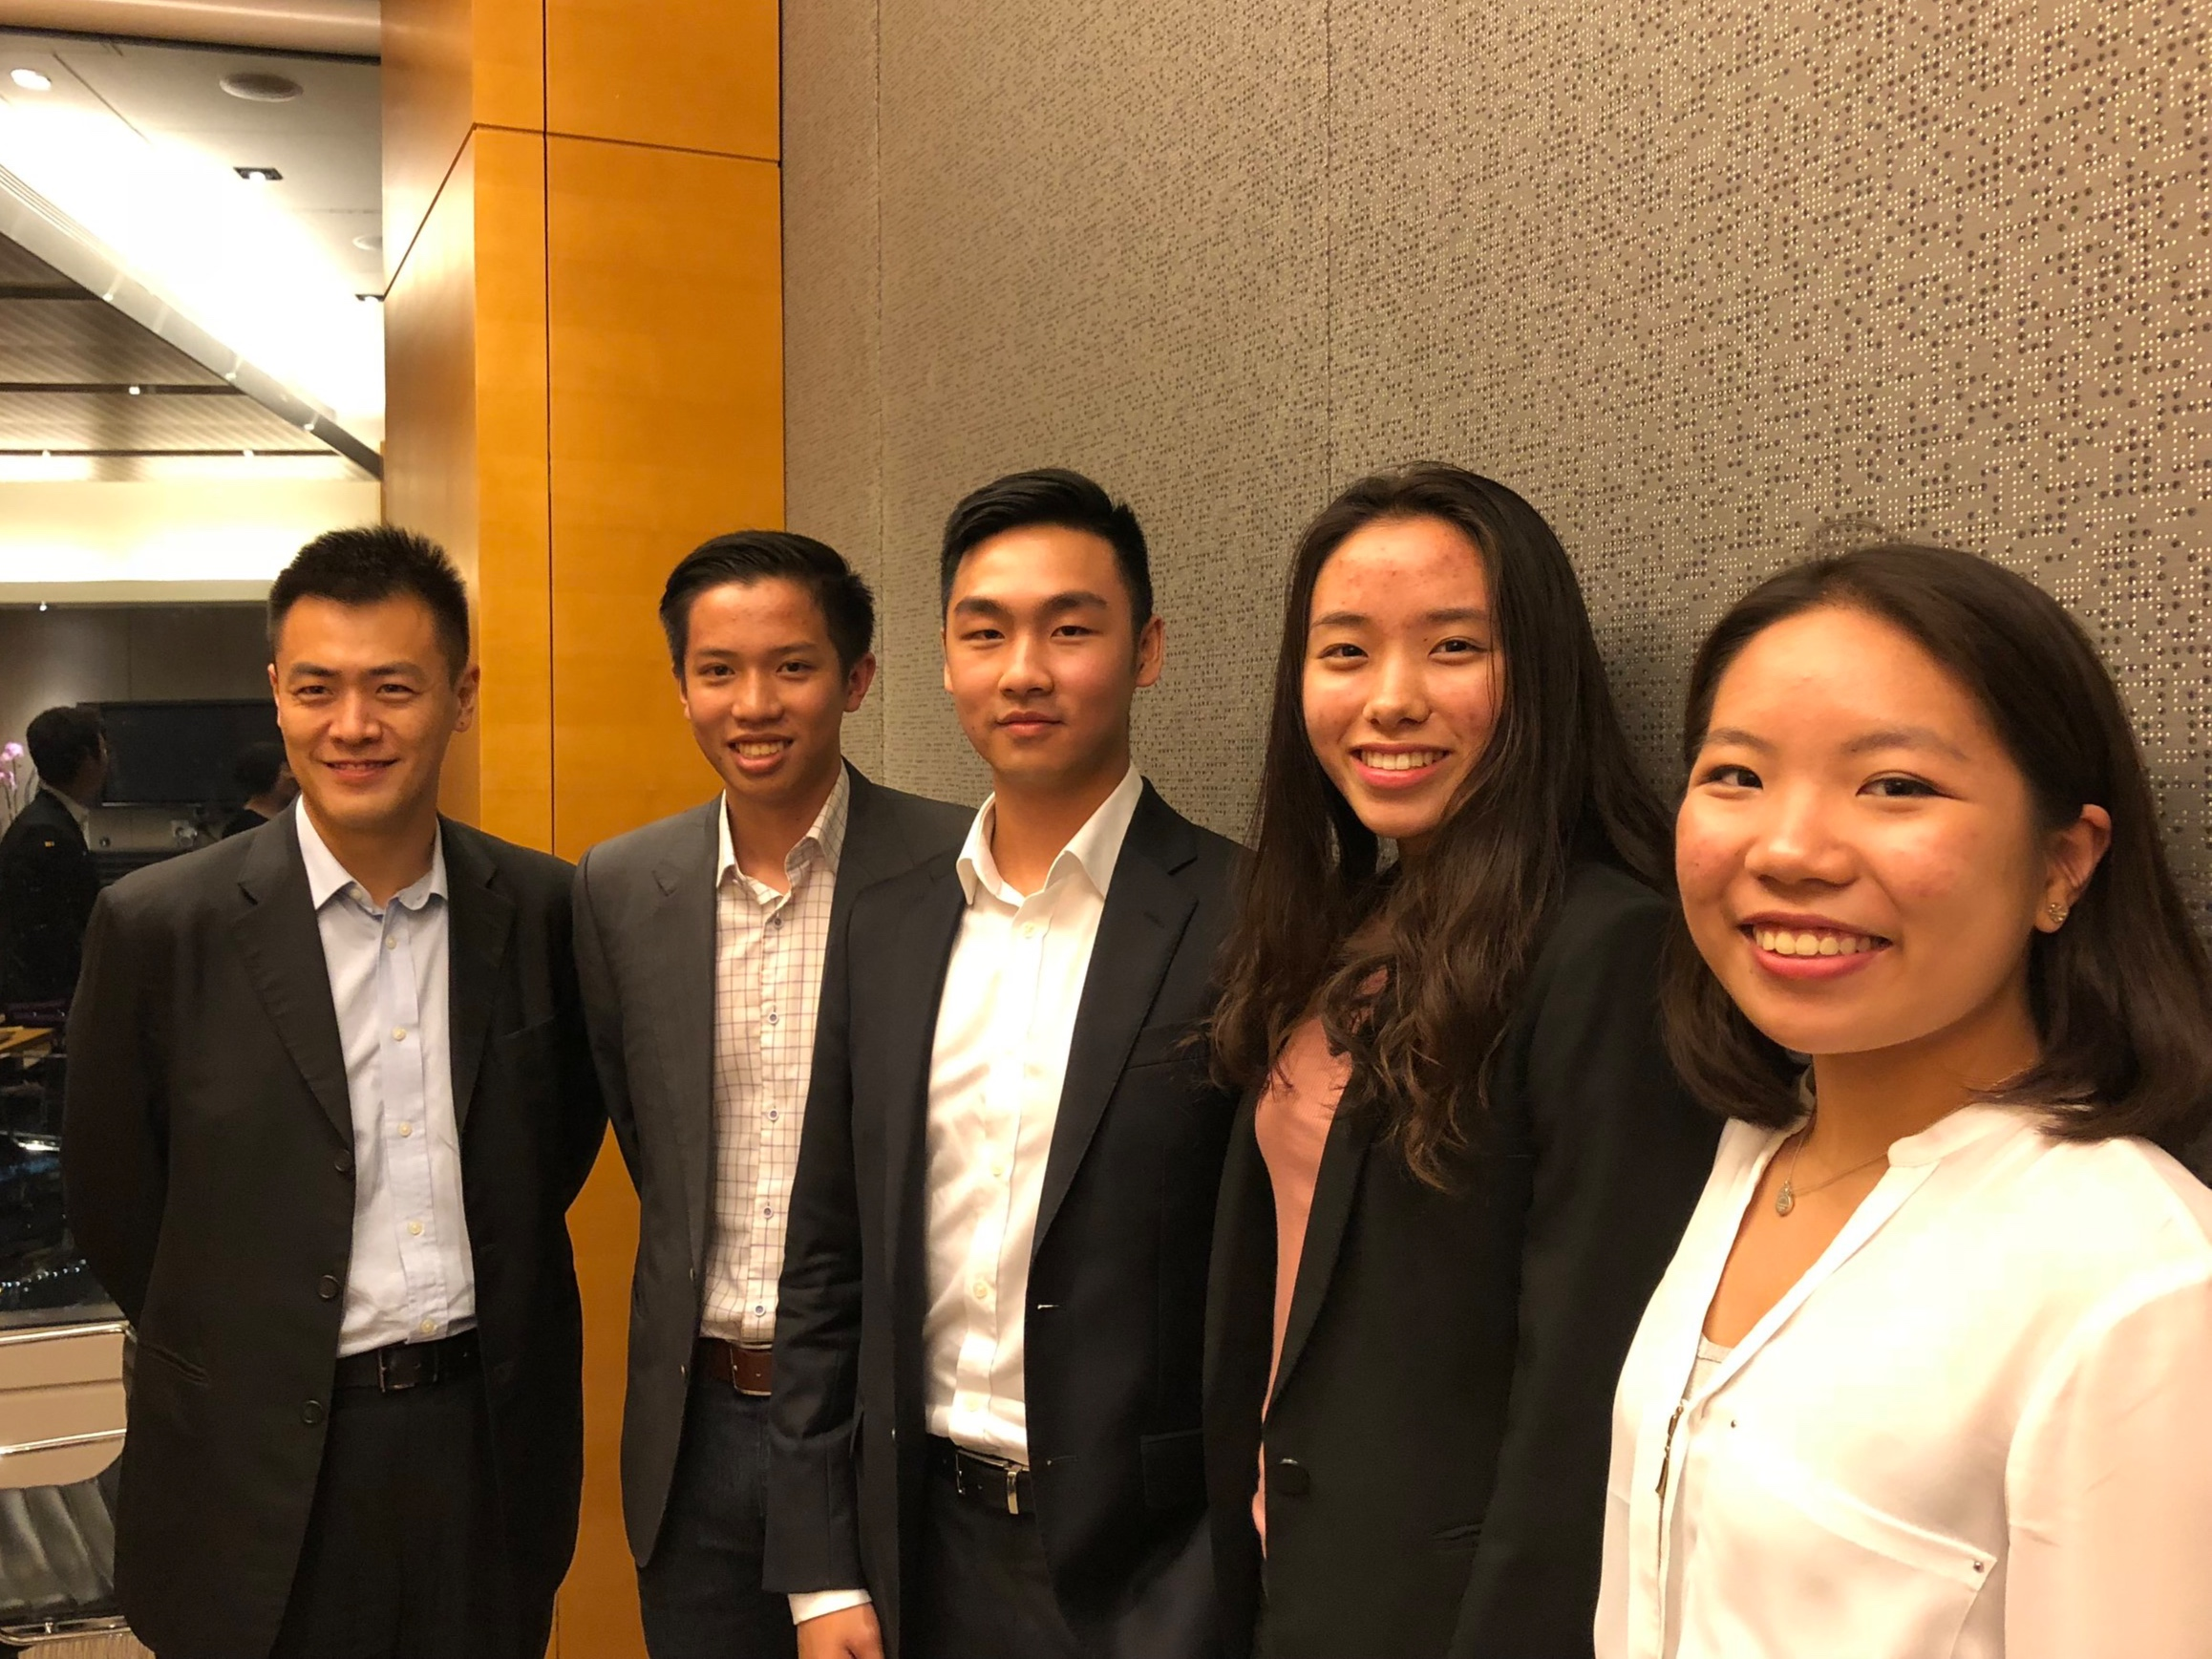 Mr. Ming Wai Lau, GBS, JP, Chairman (1st Left), Mr. Joseph Wan, Founder and President (2nd Left), Mr. Ian Chu, Senior Vice President, Policy (3rd Left), Ms. Kerry Hsu, Senior Vice President, Operations (2nd Right), Harriet Kwok, Senior Vice President, Communications (1st Right)